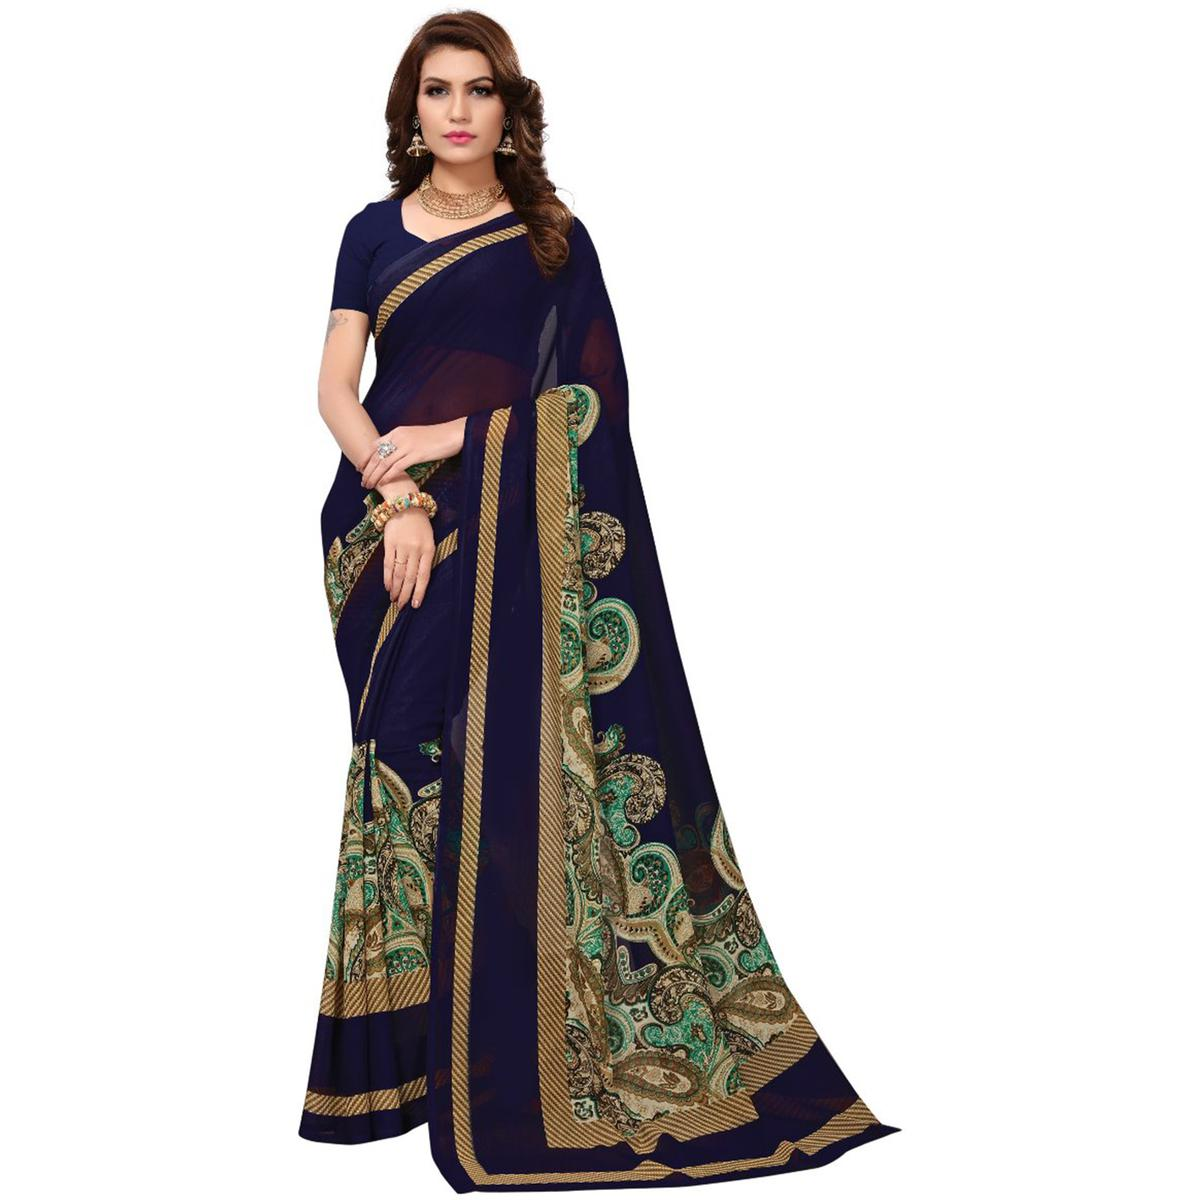 Desiring Navy Blue Colored Casual Printed Georgette Saree